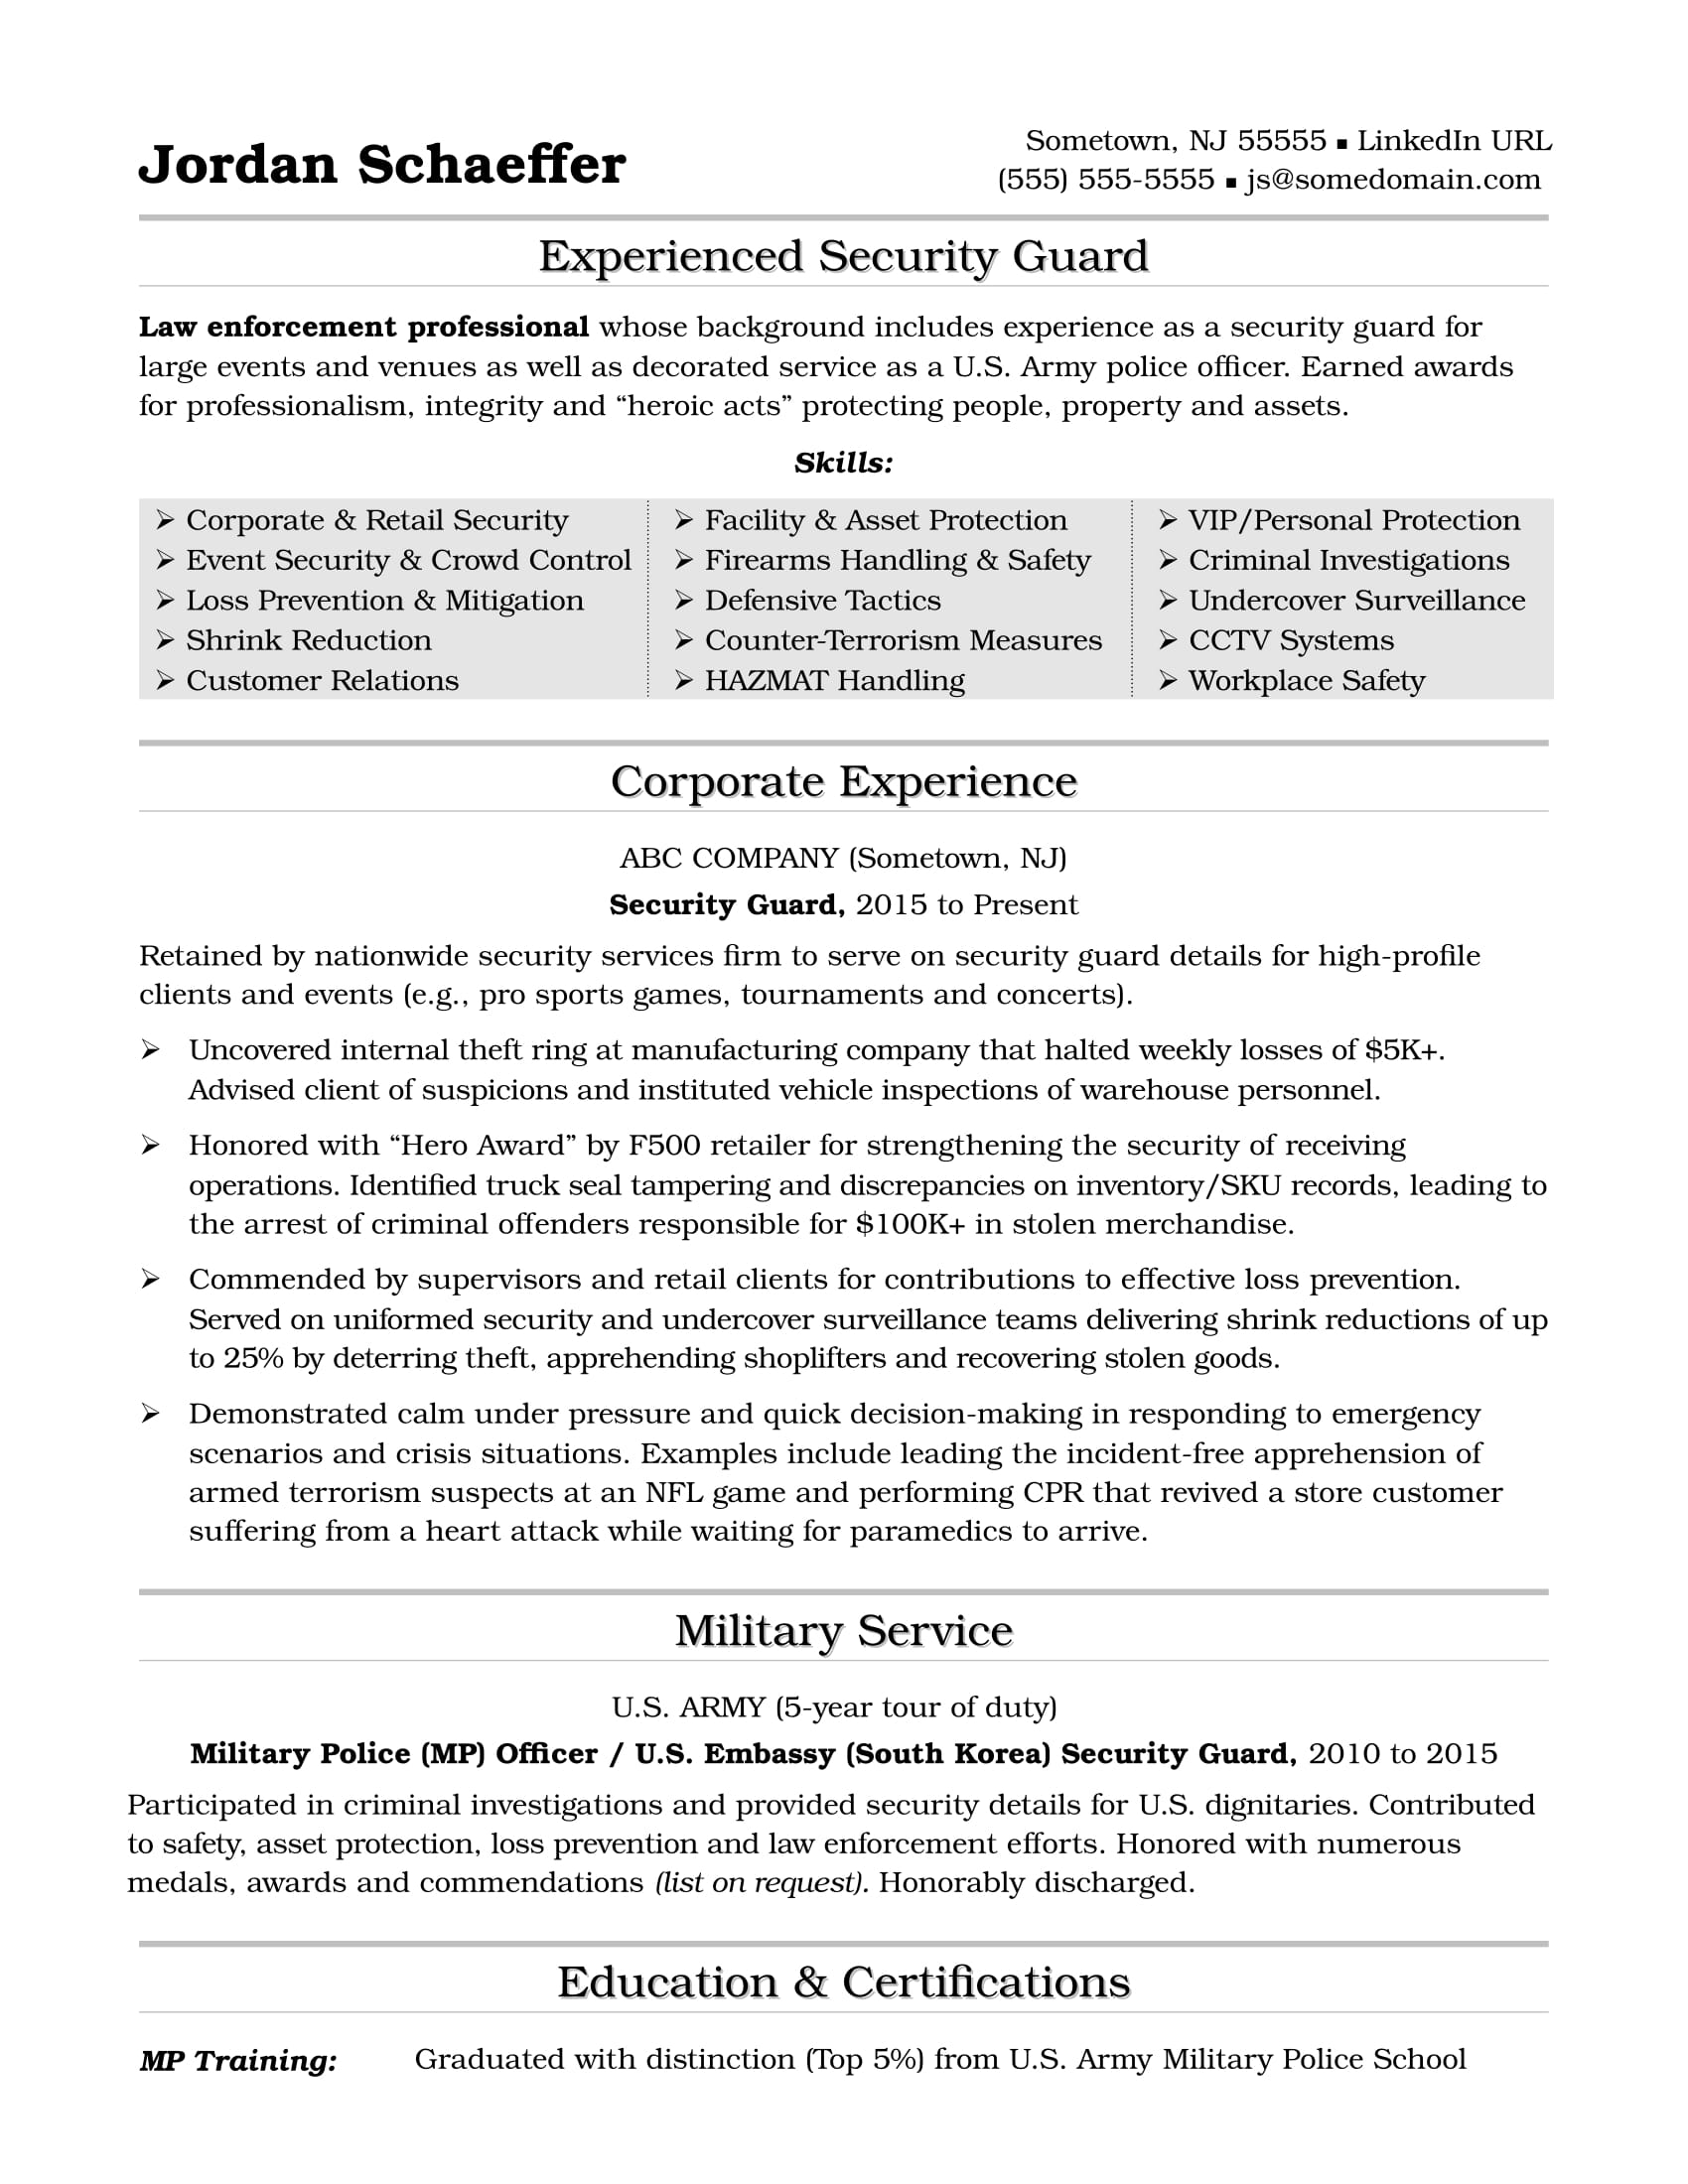 Security Resume Examples | Security Guard Resume Sample Monster Com